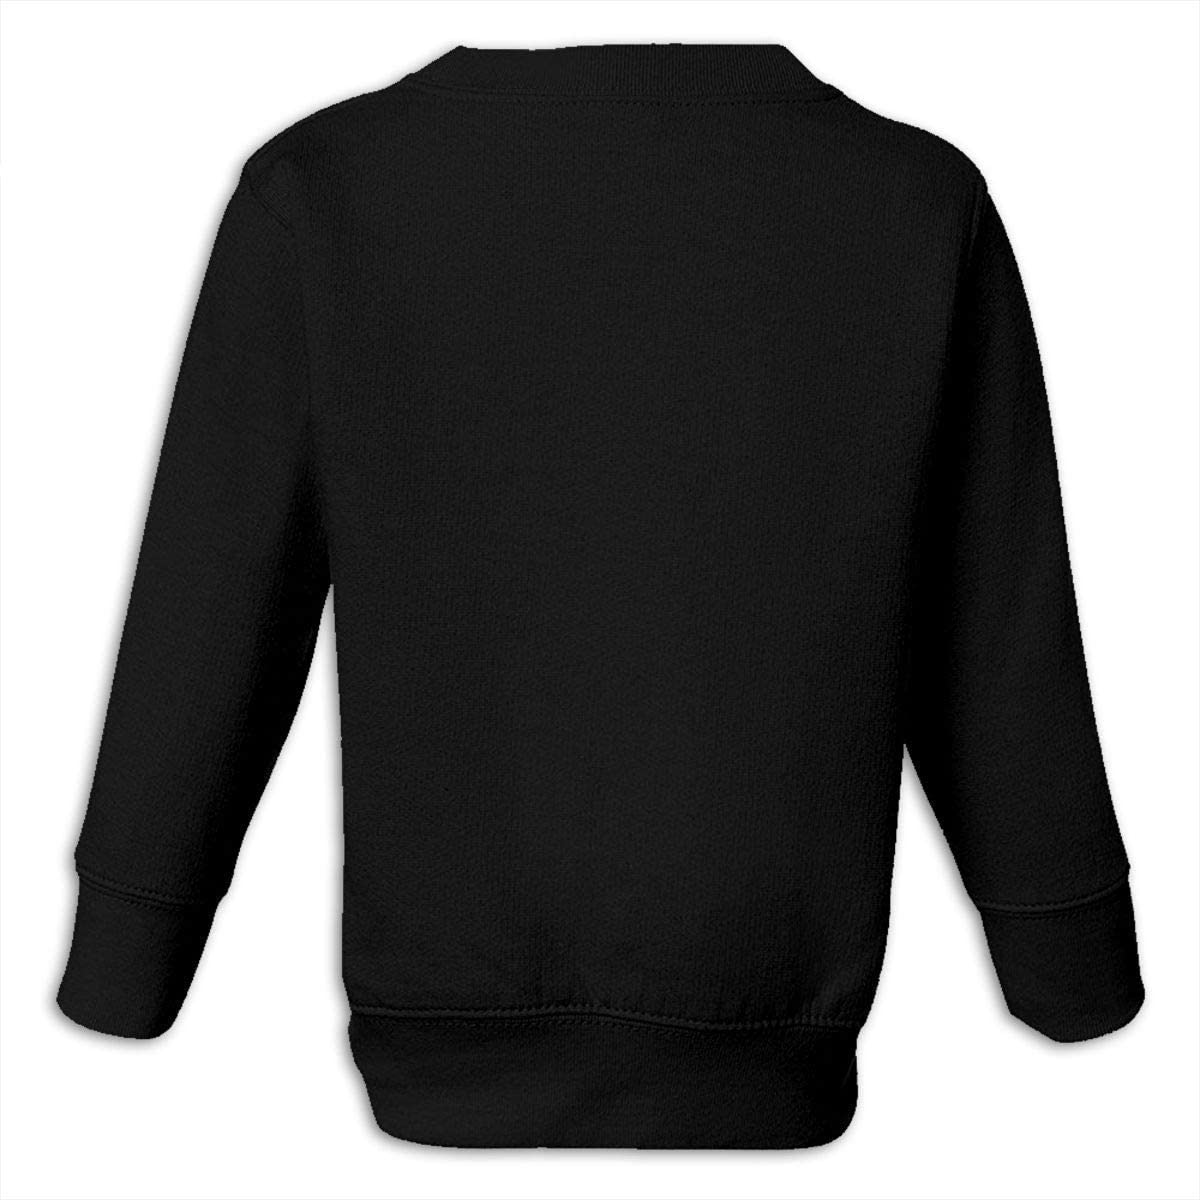 wudici Just Volleyball Boys Girls Pullover Sweaters Crewneck Sweatshirts Clothes for 2-6 Years Old Children